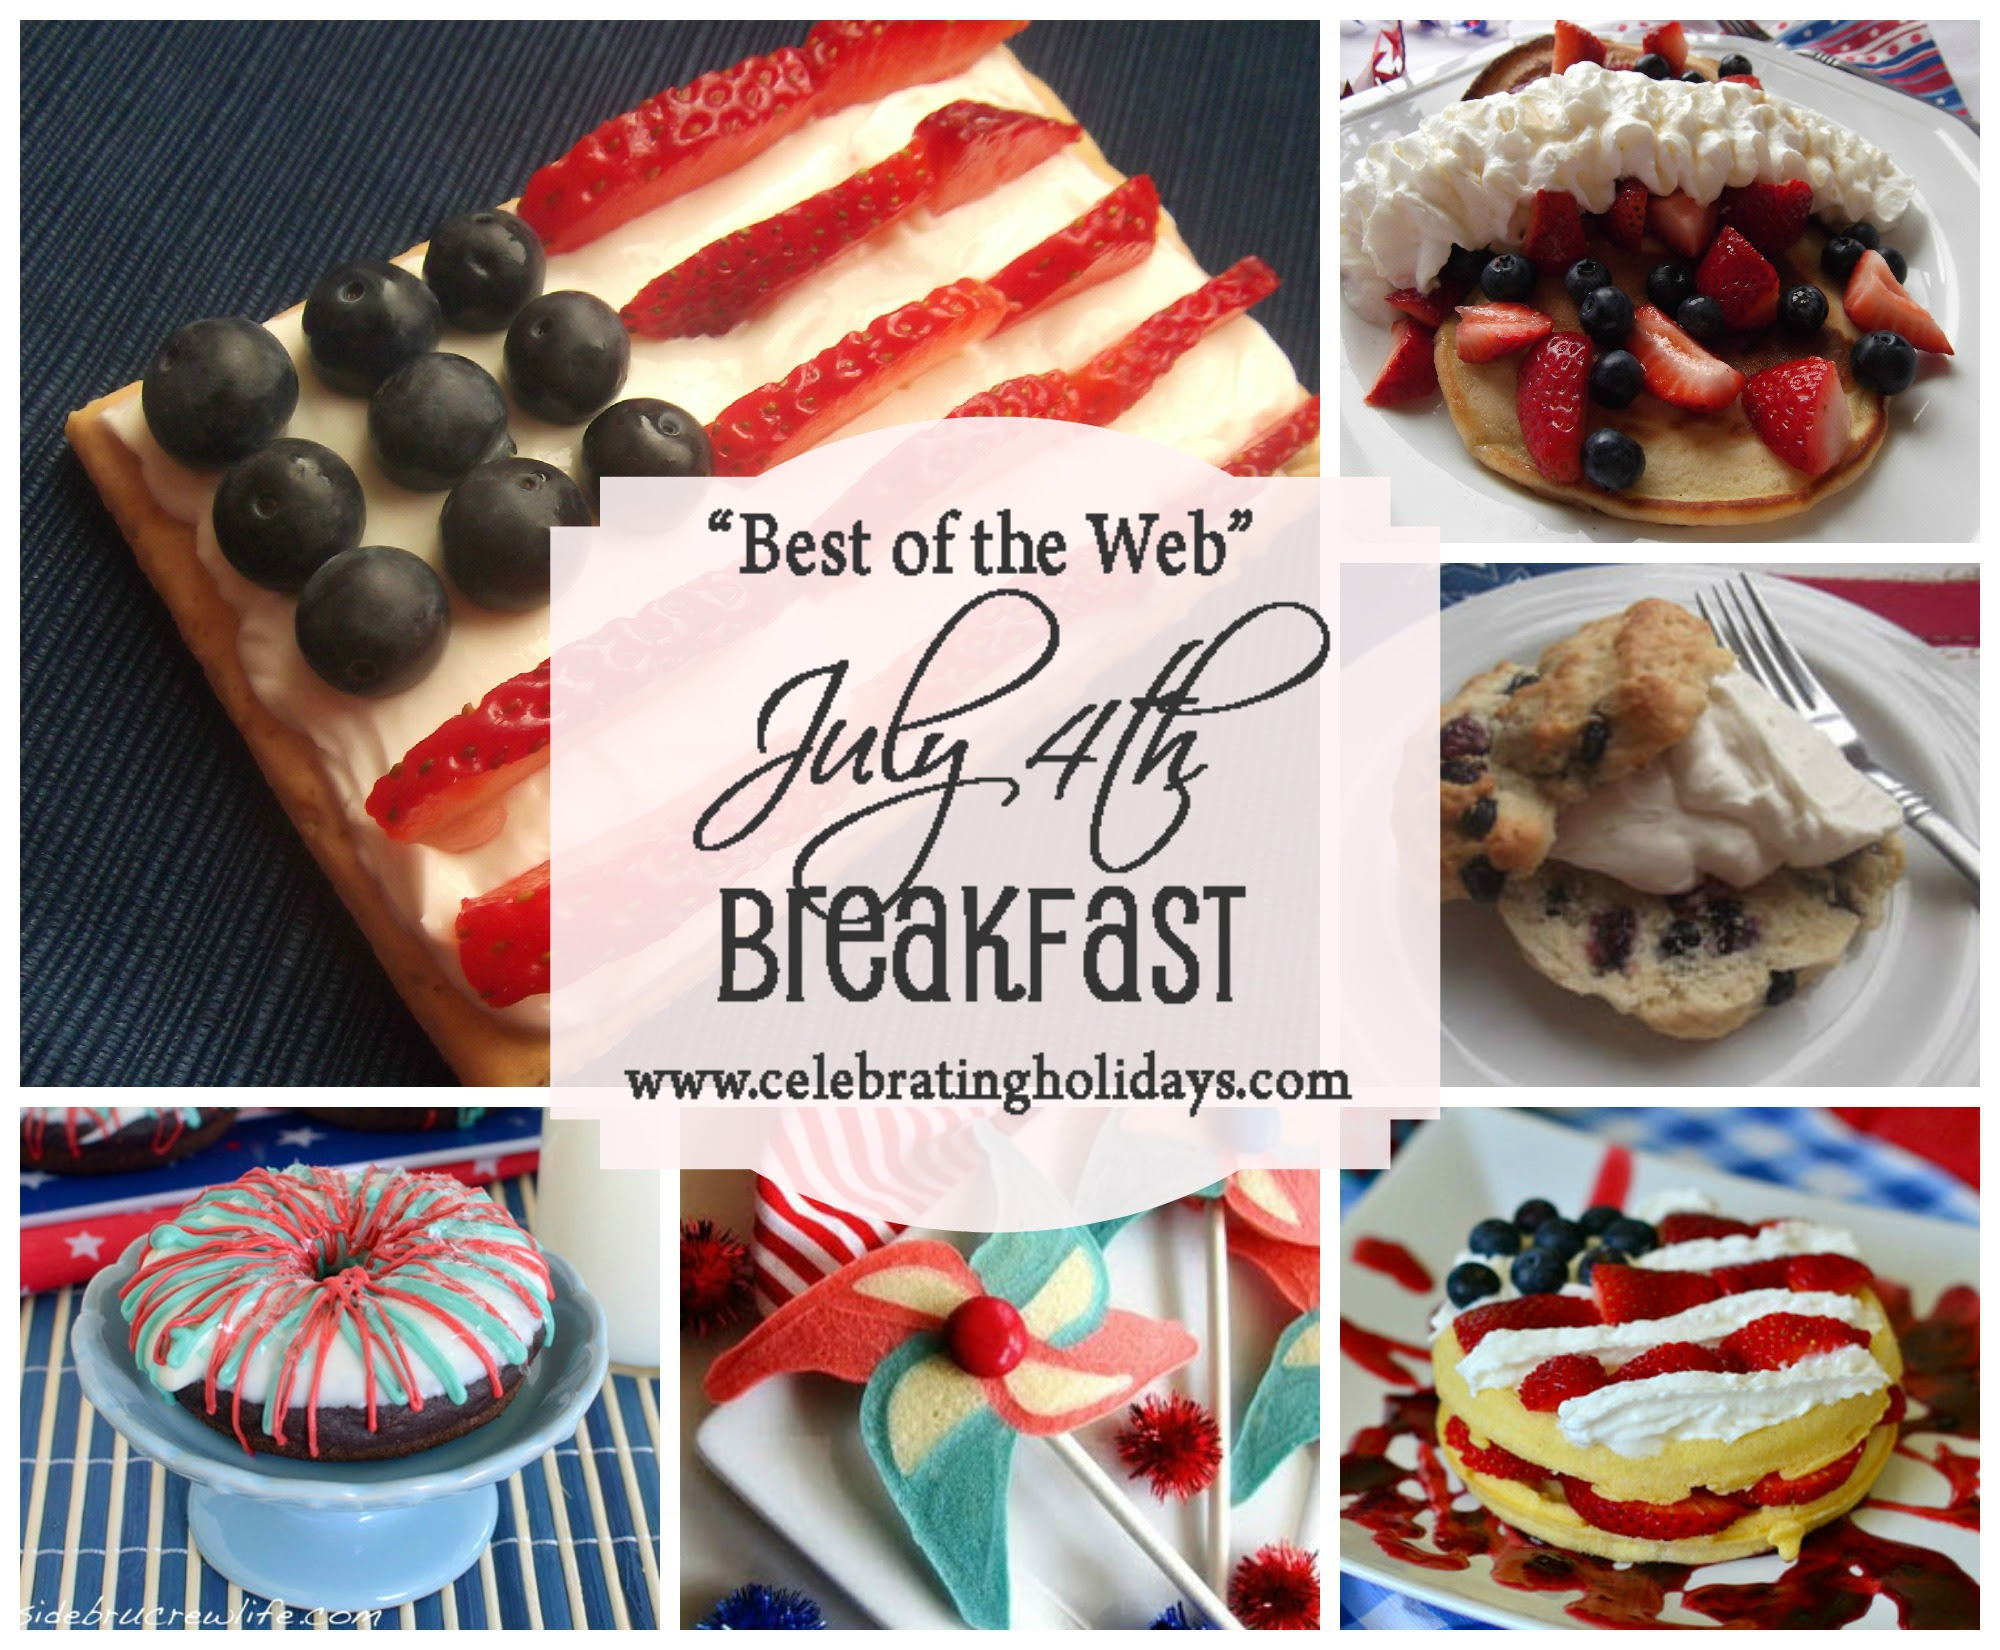 July 4th Breakfast Ideas And Recipes Celebrating Holidays